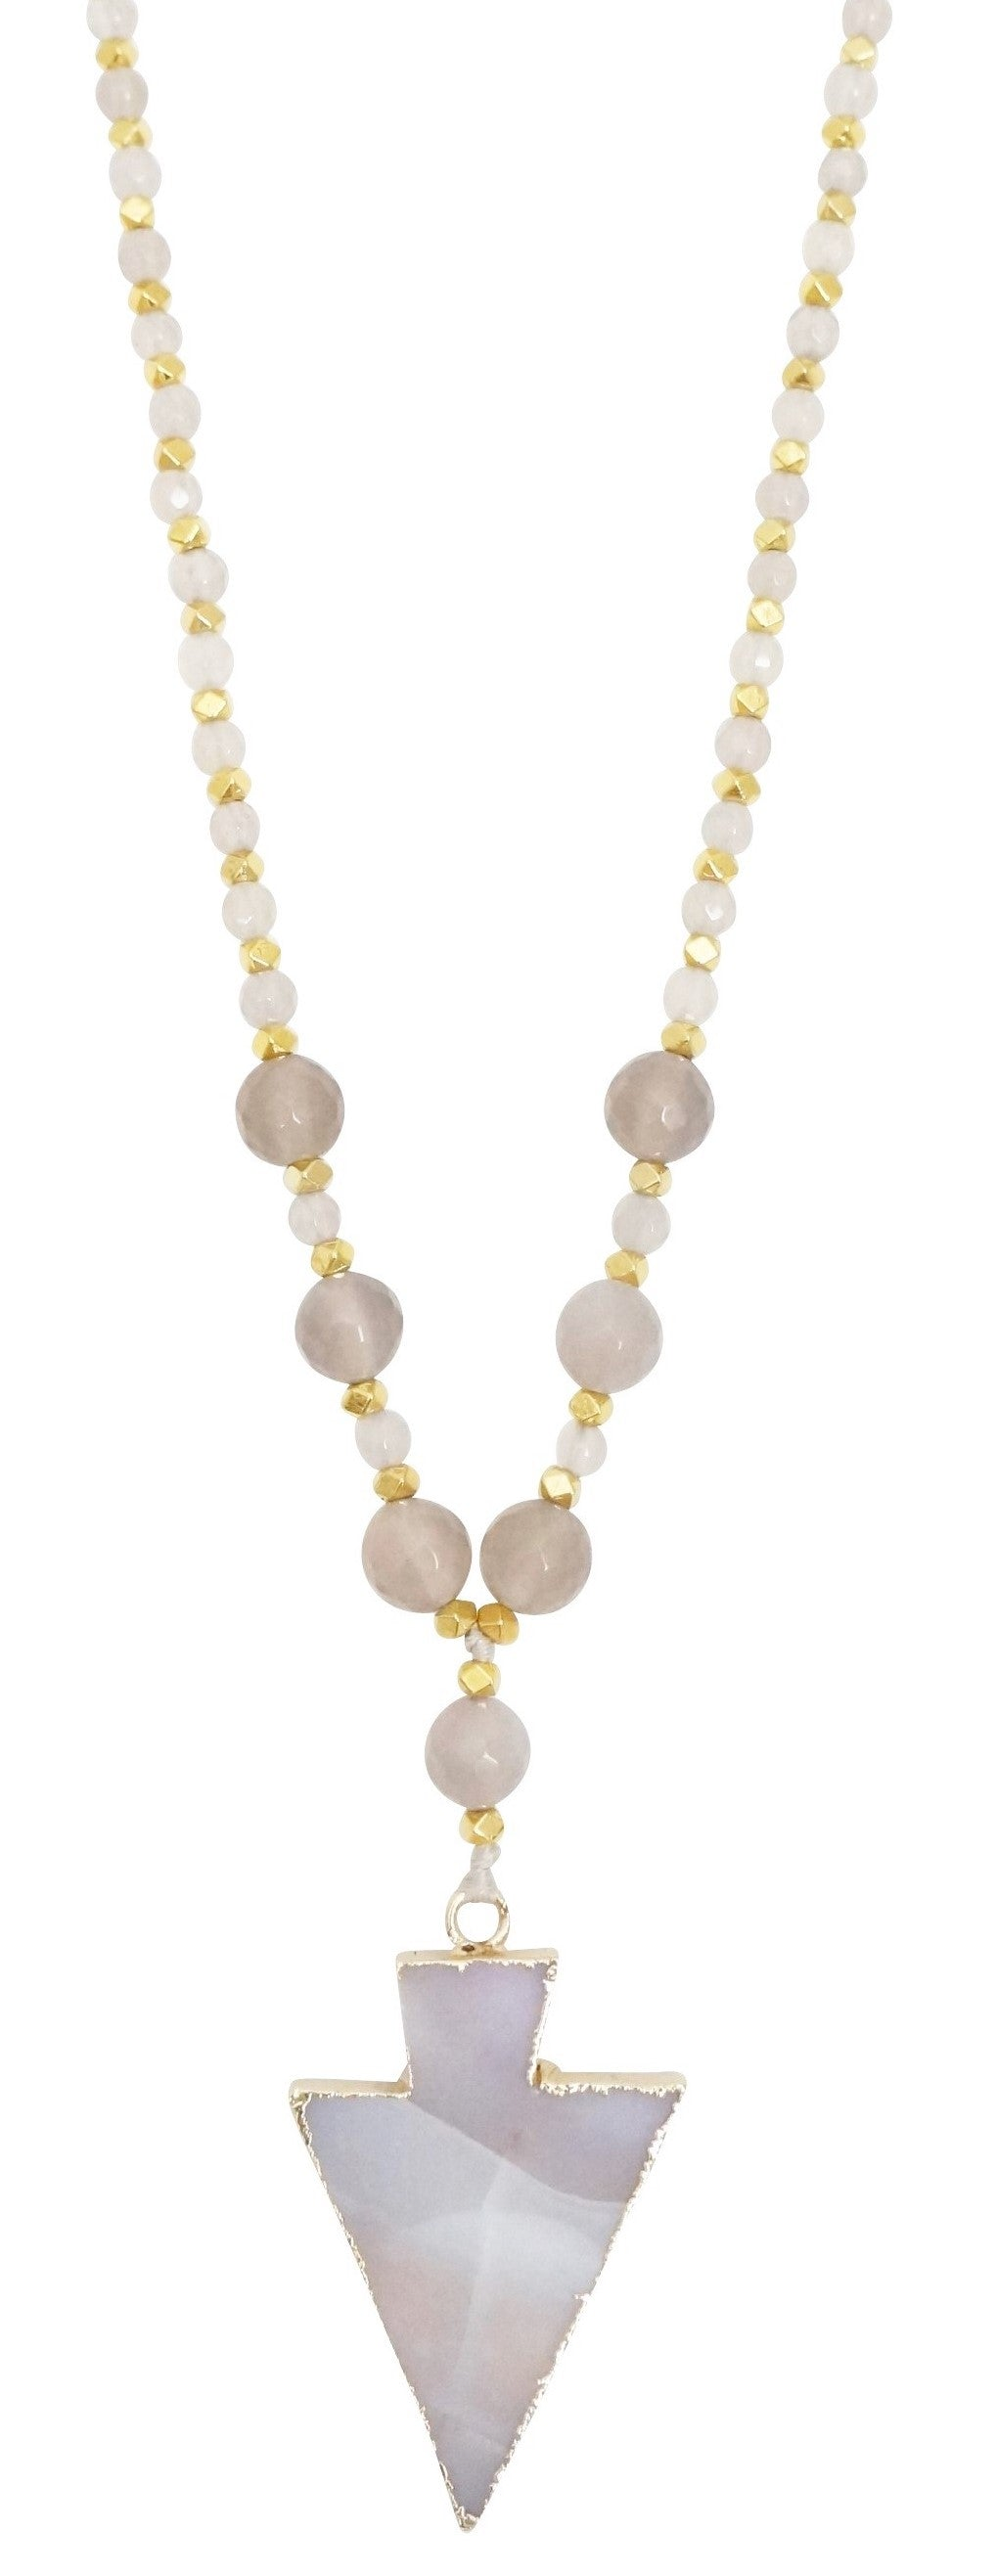 Harmony Necklace - Carolyn Hearn Designs